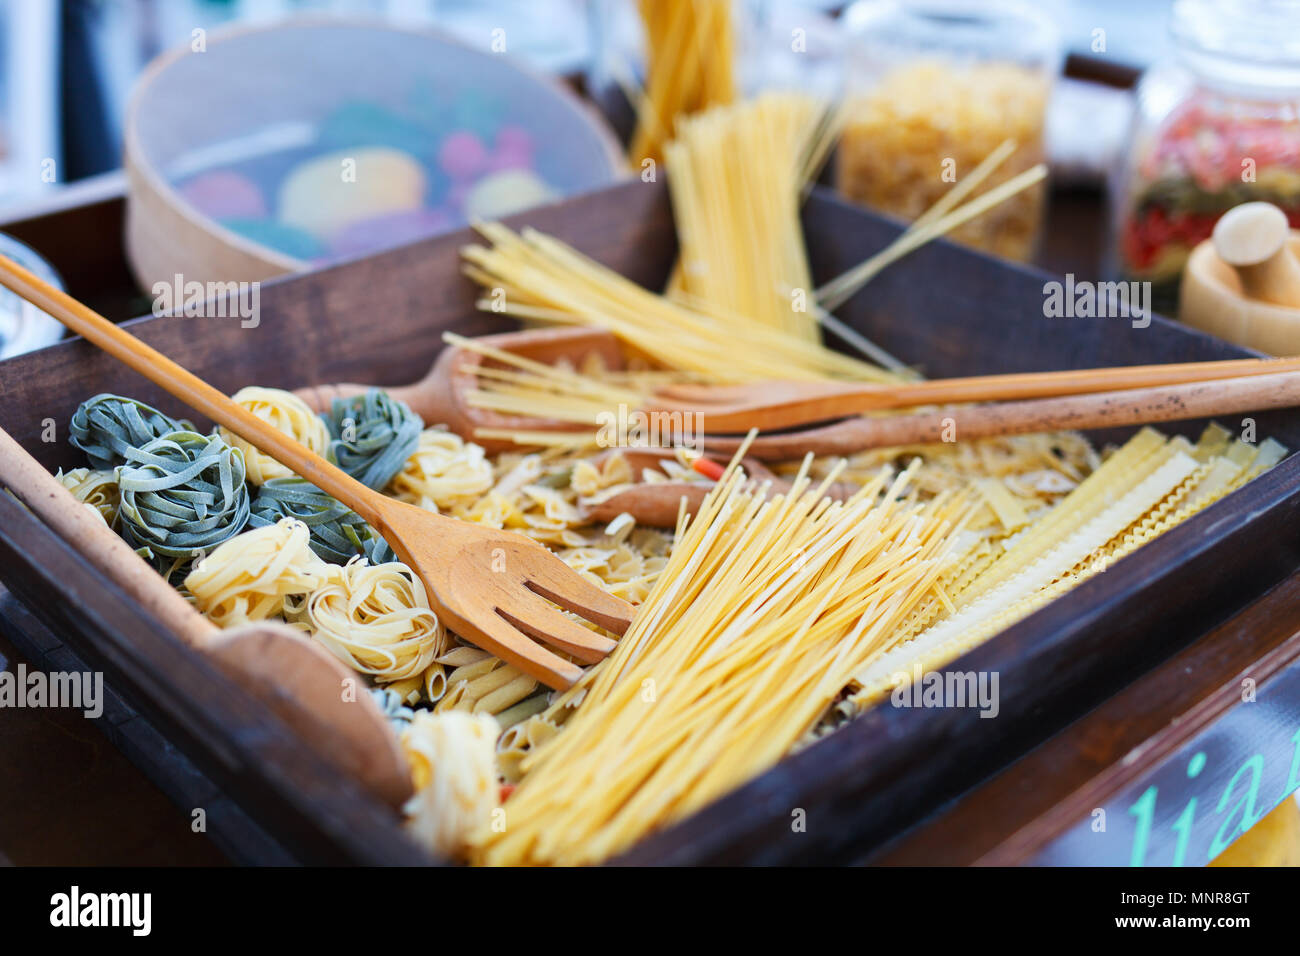 Variety of types and shapes of uncooked Italian pasta - Stock Image